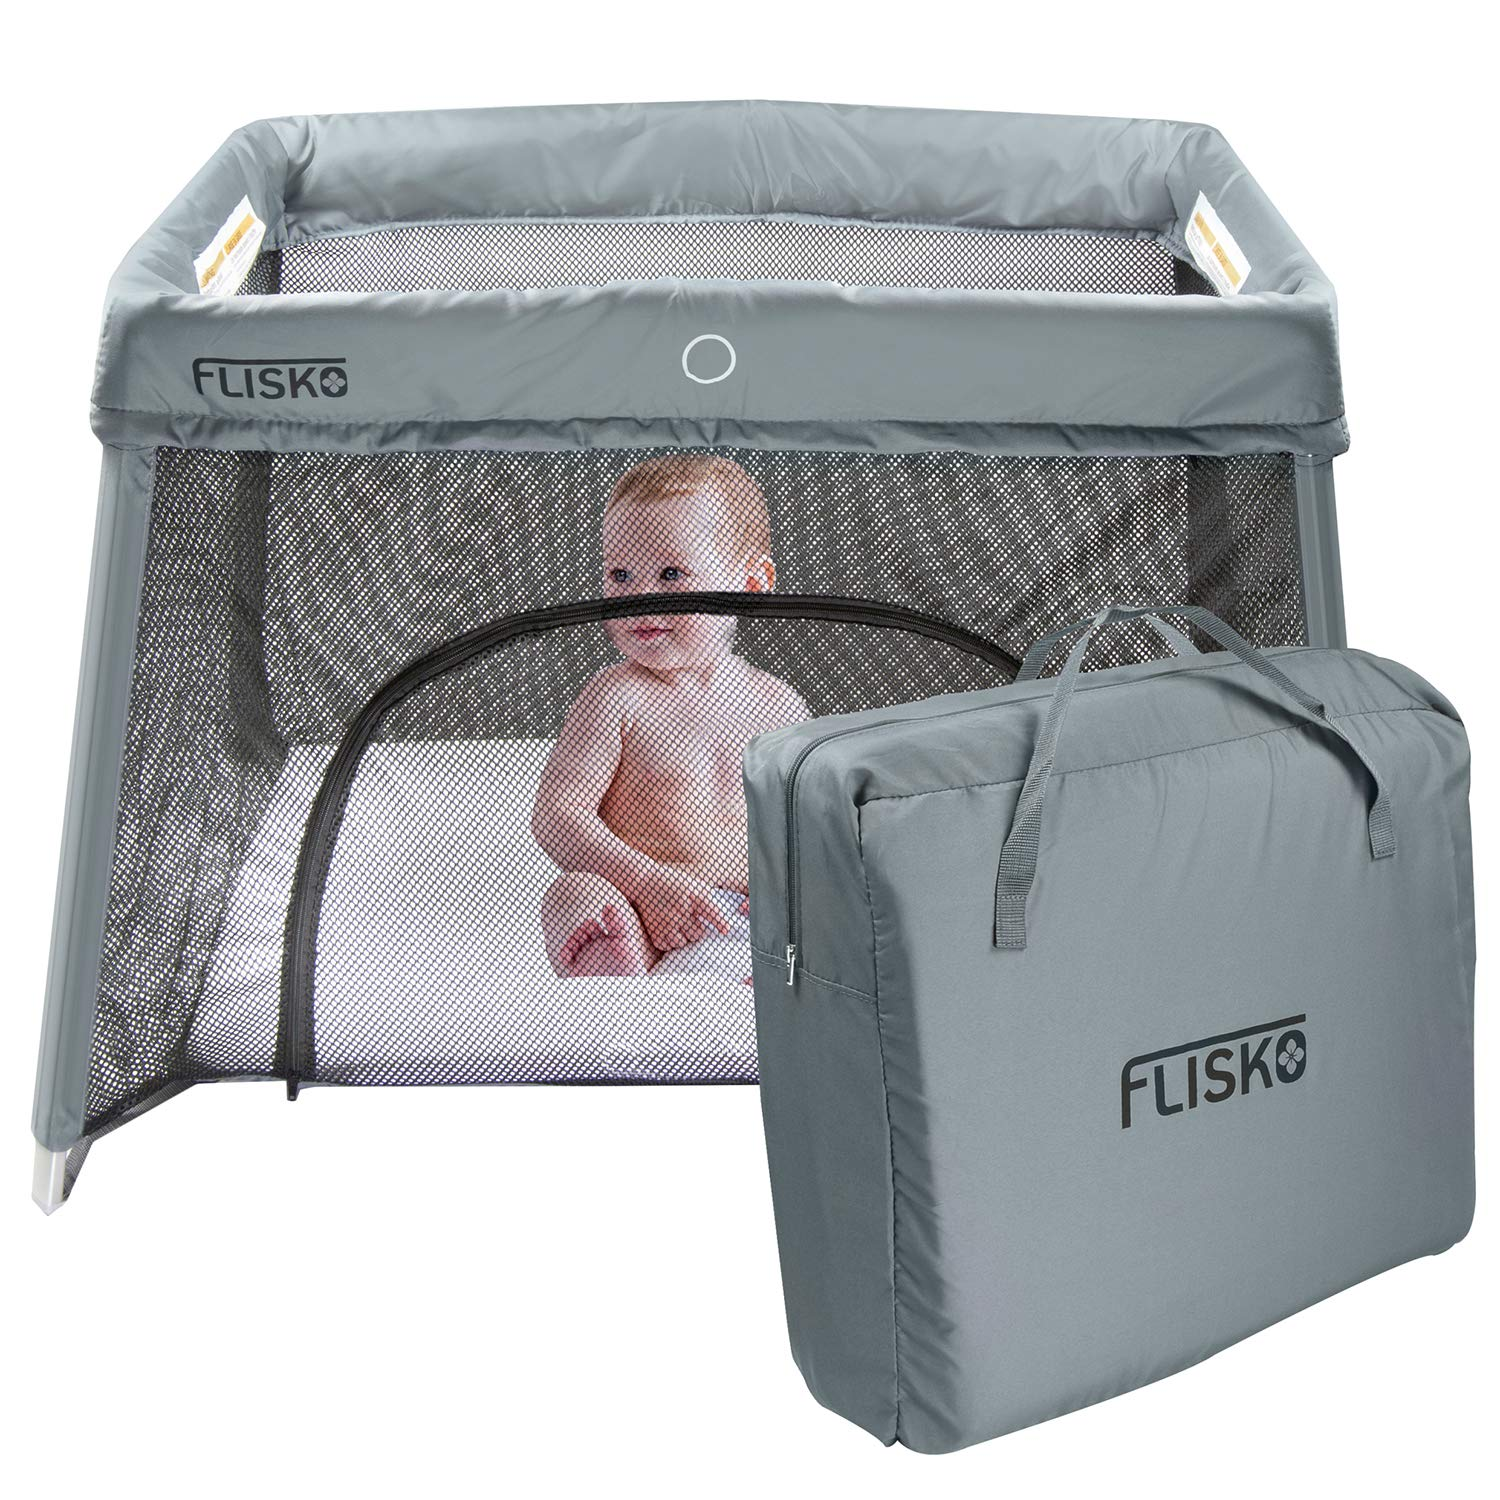 Flisko 2 in 1 Travel Crib Bassinet Lightweight, Pack Play-Yard for Infants Toddlers. Simple Assembly Easily Collapsible. Portable Crib, Baby Bed. Mattress Fitted Sheet Included